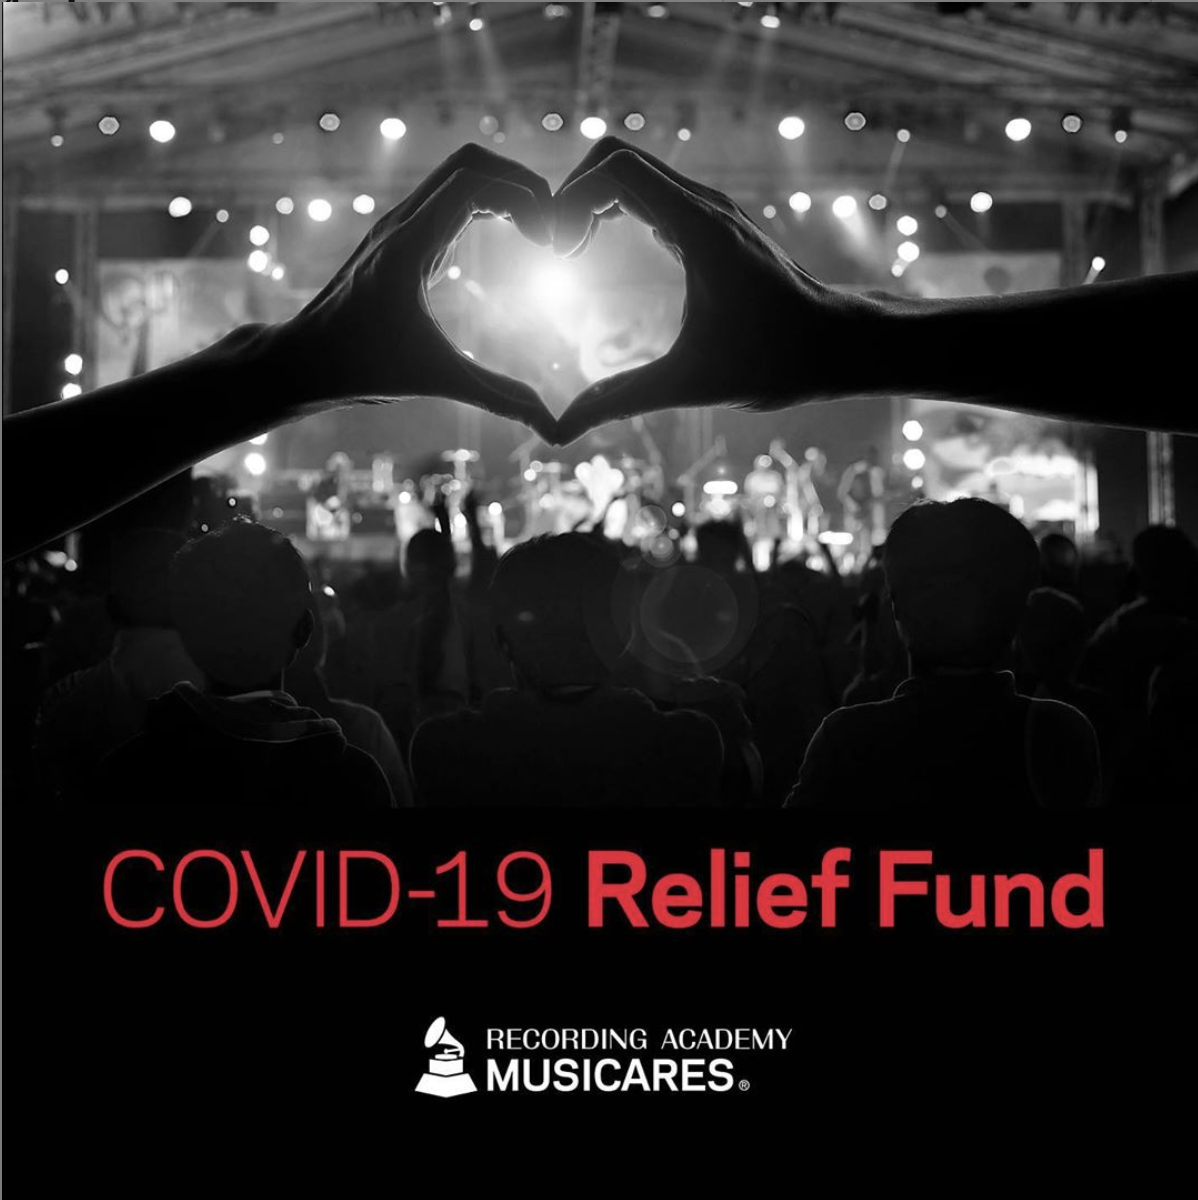 Here's How You Can Help Artists & Venues During COVID-19